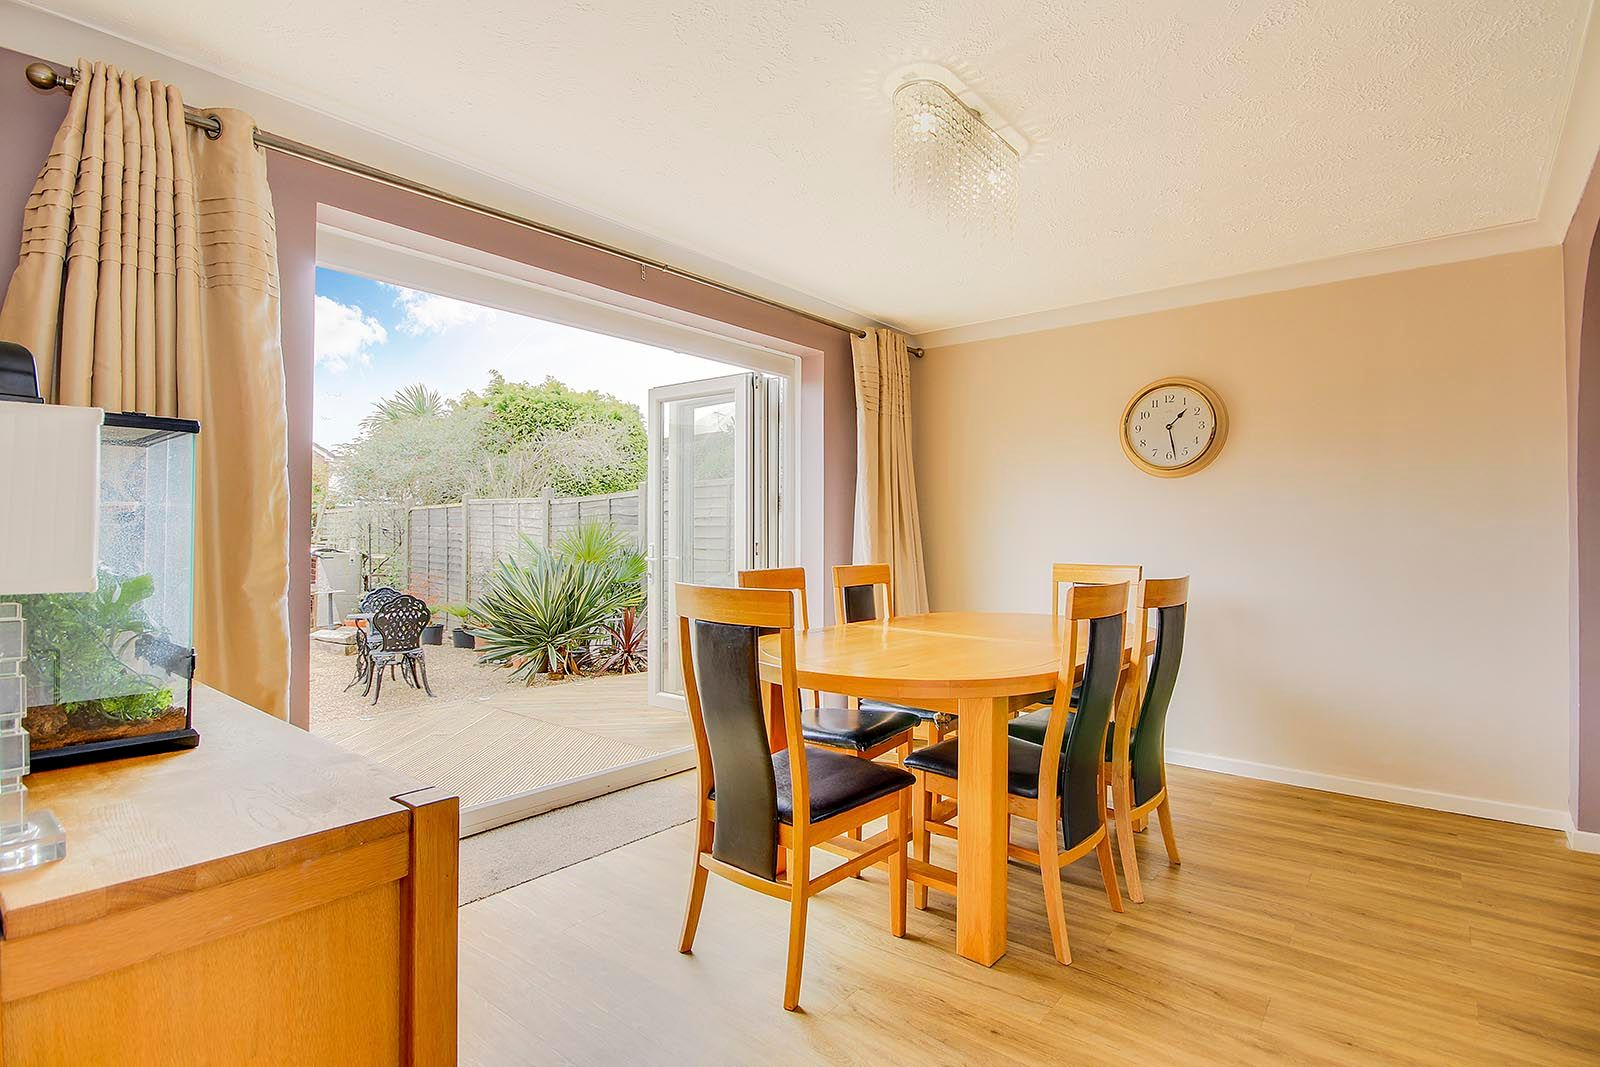 3 bed house for sale in Woodlands Close (COMP AUG 19)  - Property Image 14